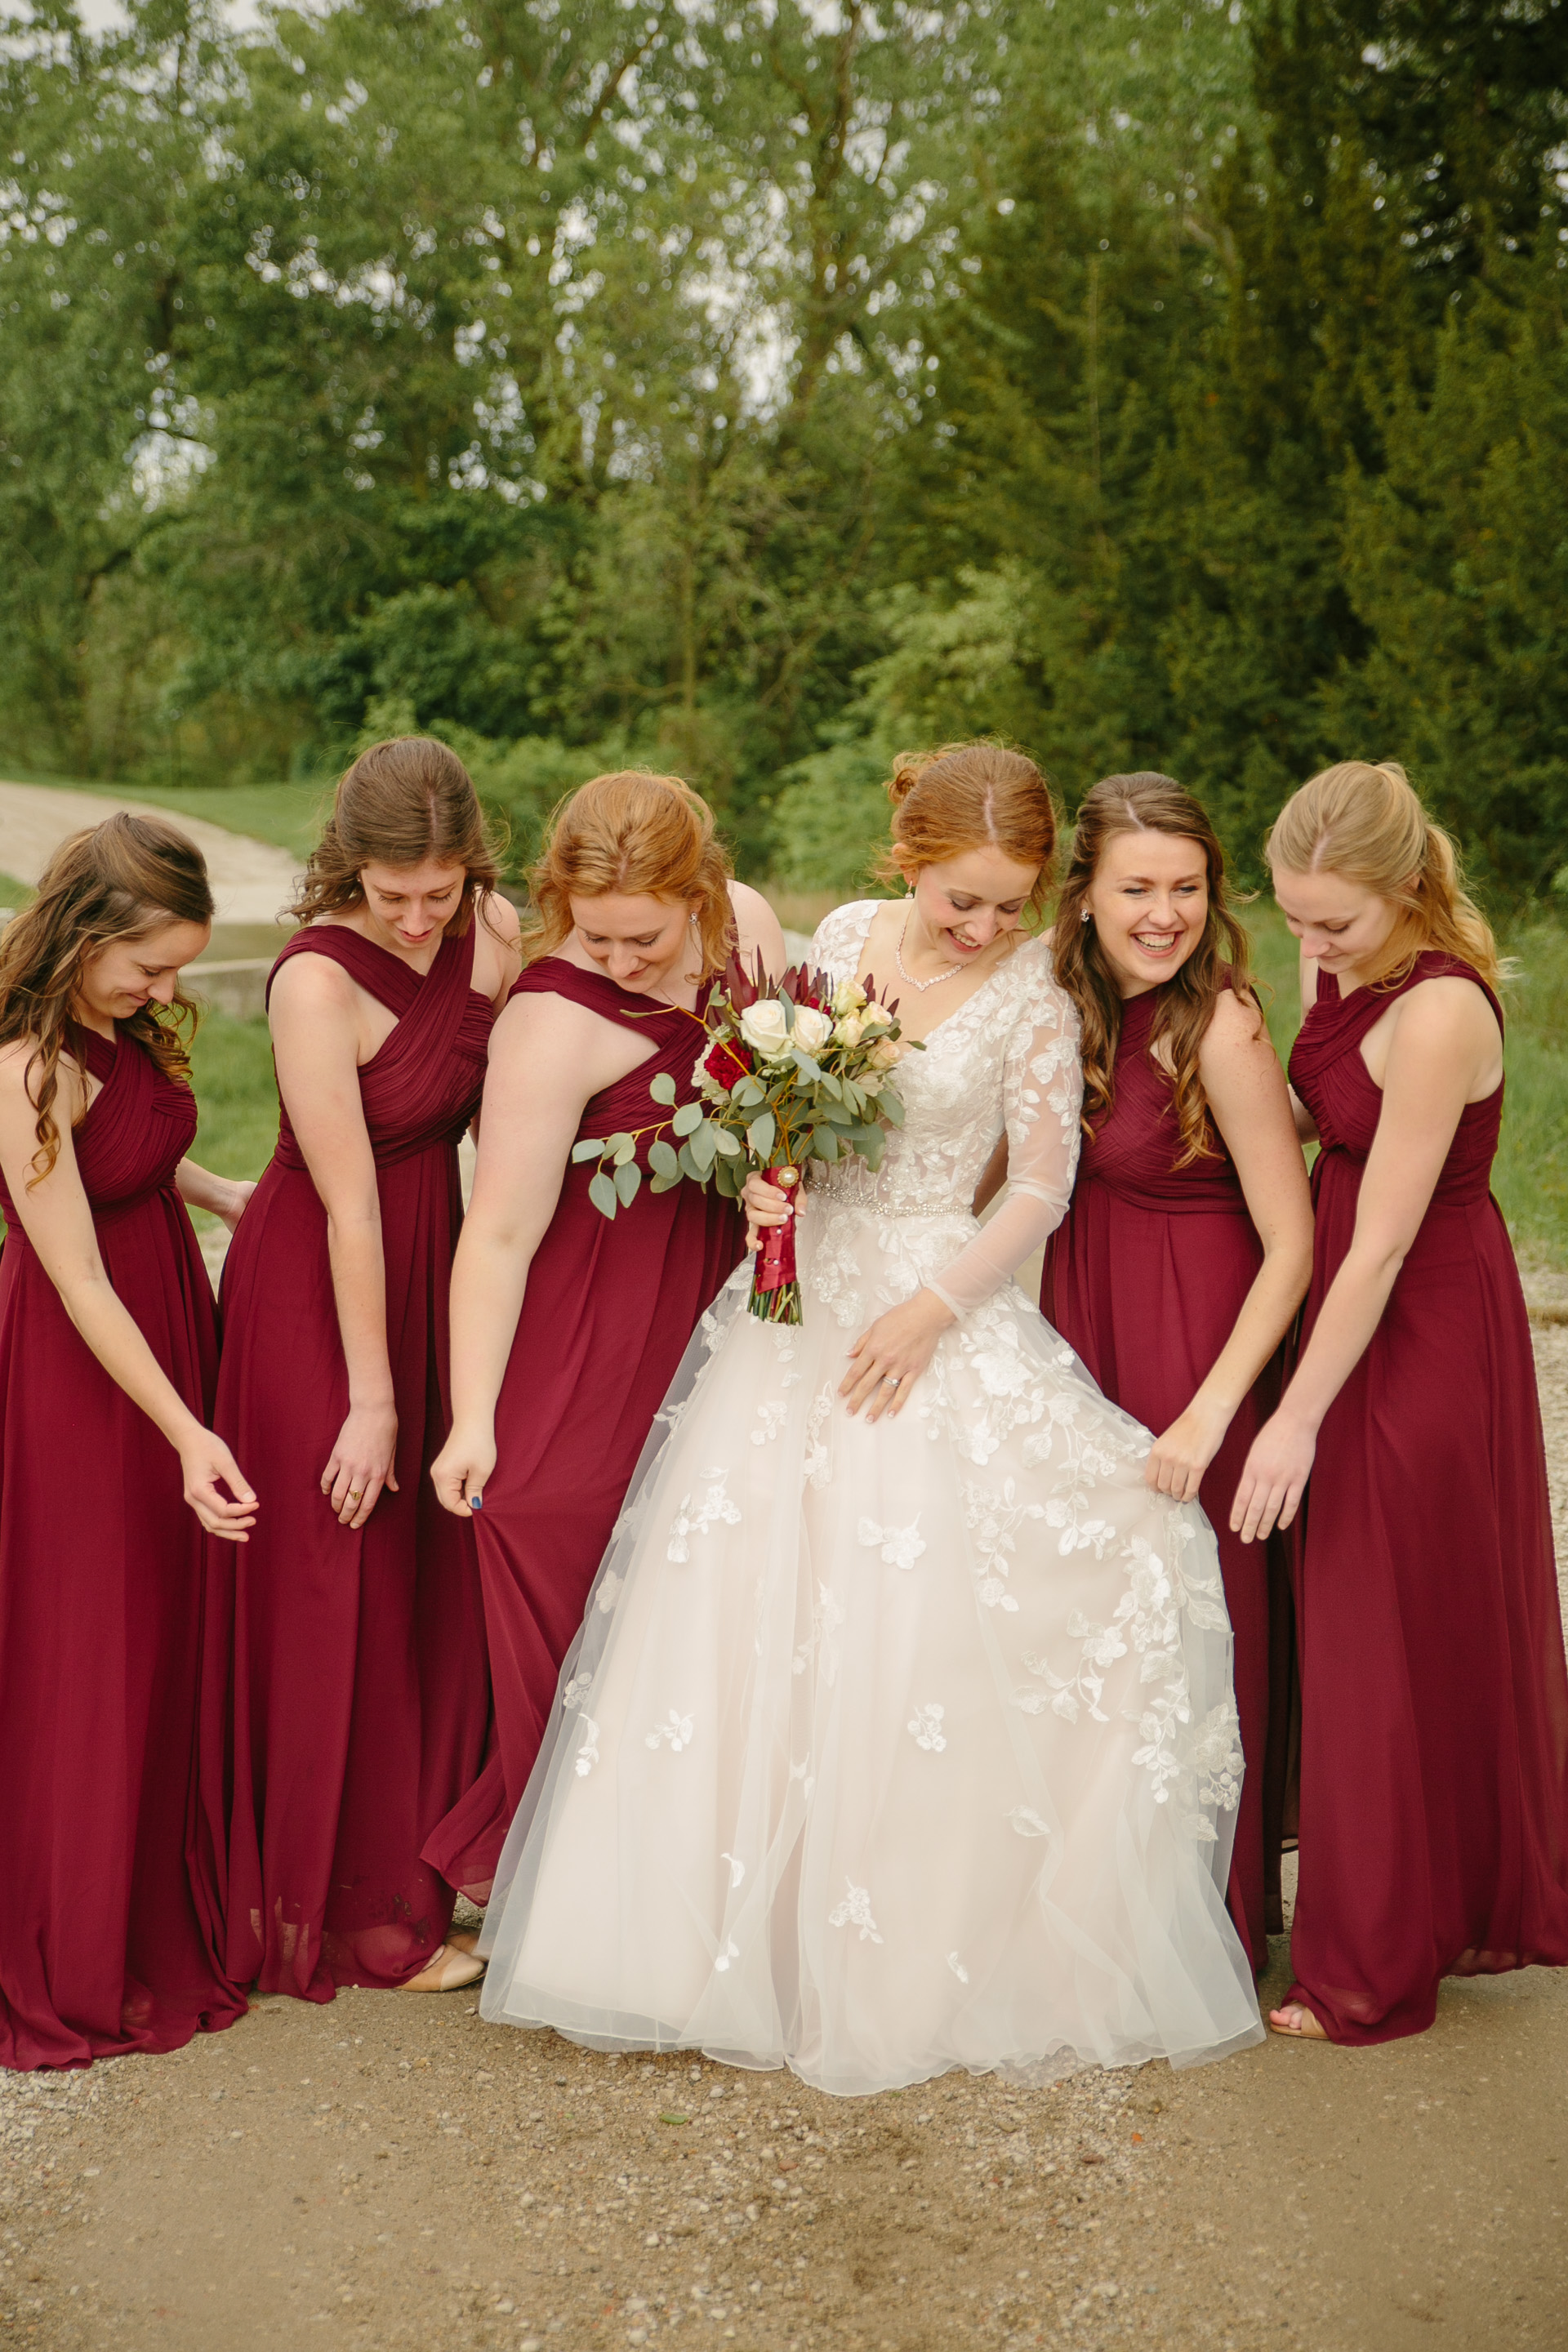 bride and bridesmaids in burgundy wine dresses at outdoor weddin in des moines